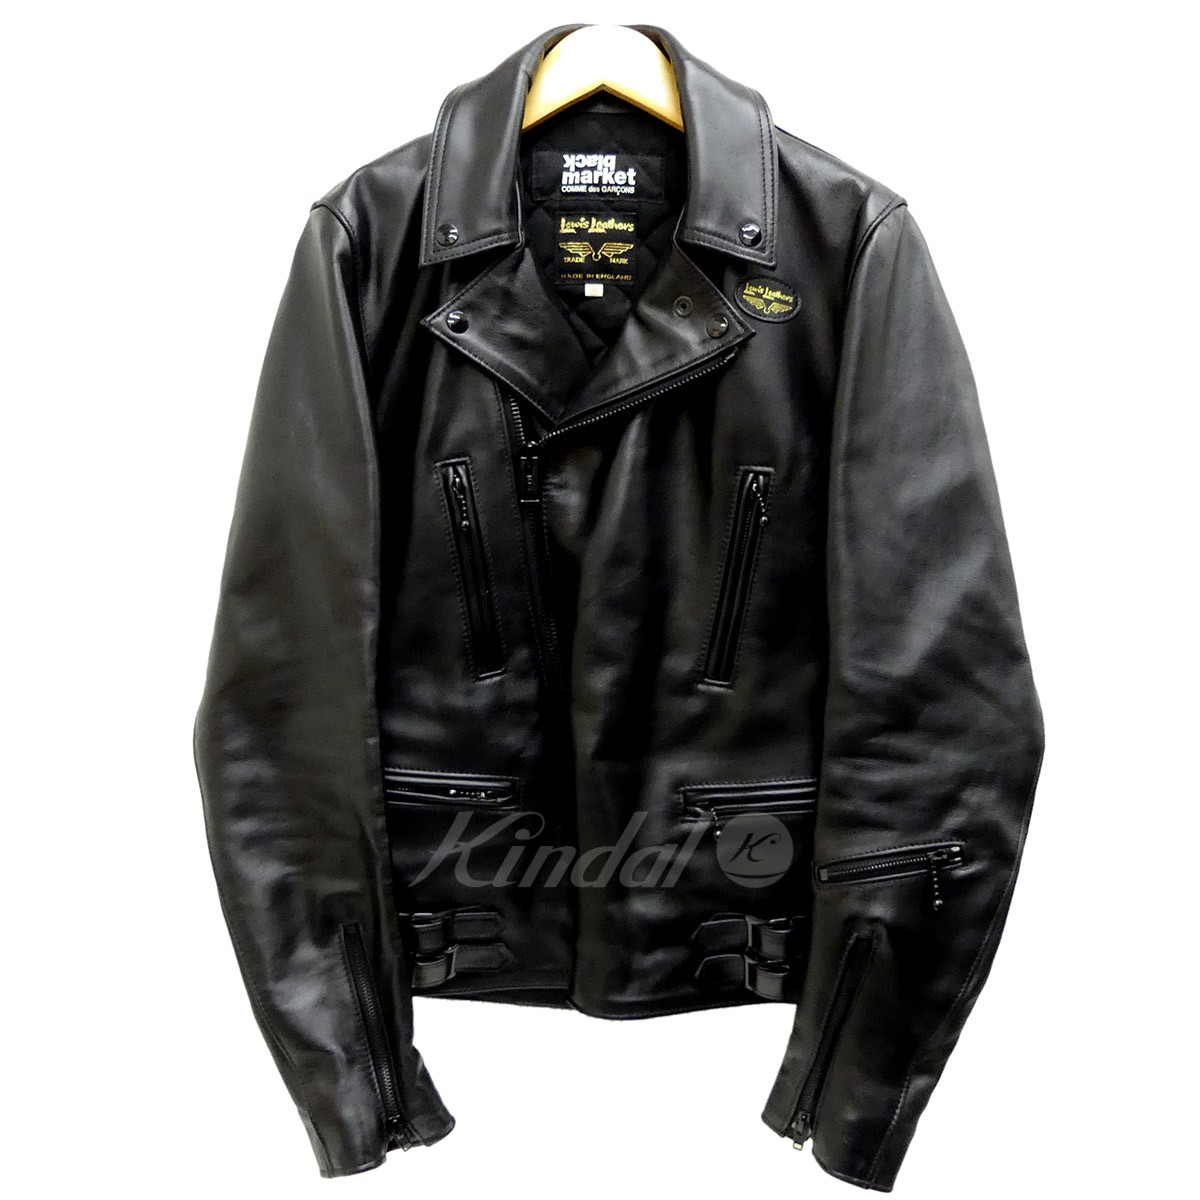 【中古】COMME des GARCONS BLACKMARKET Lewis Leather Lightning Tight Fit レザージャケット 【送料無料】 【134290】 【KIND1641】